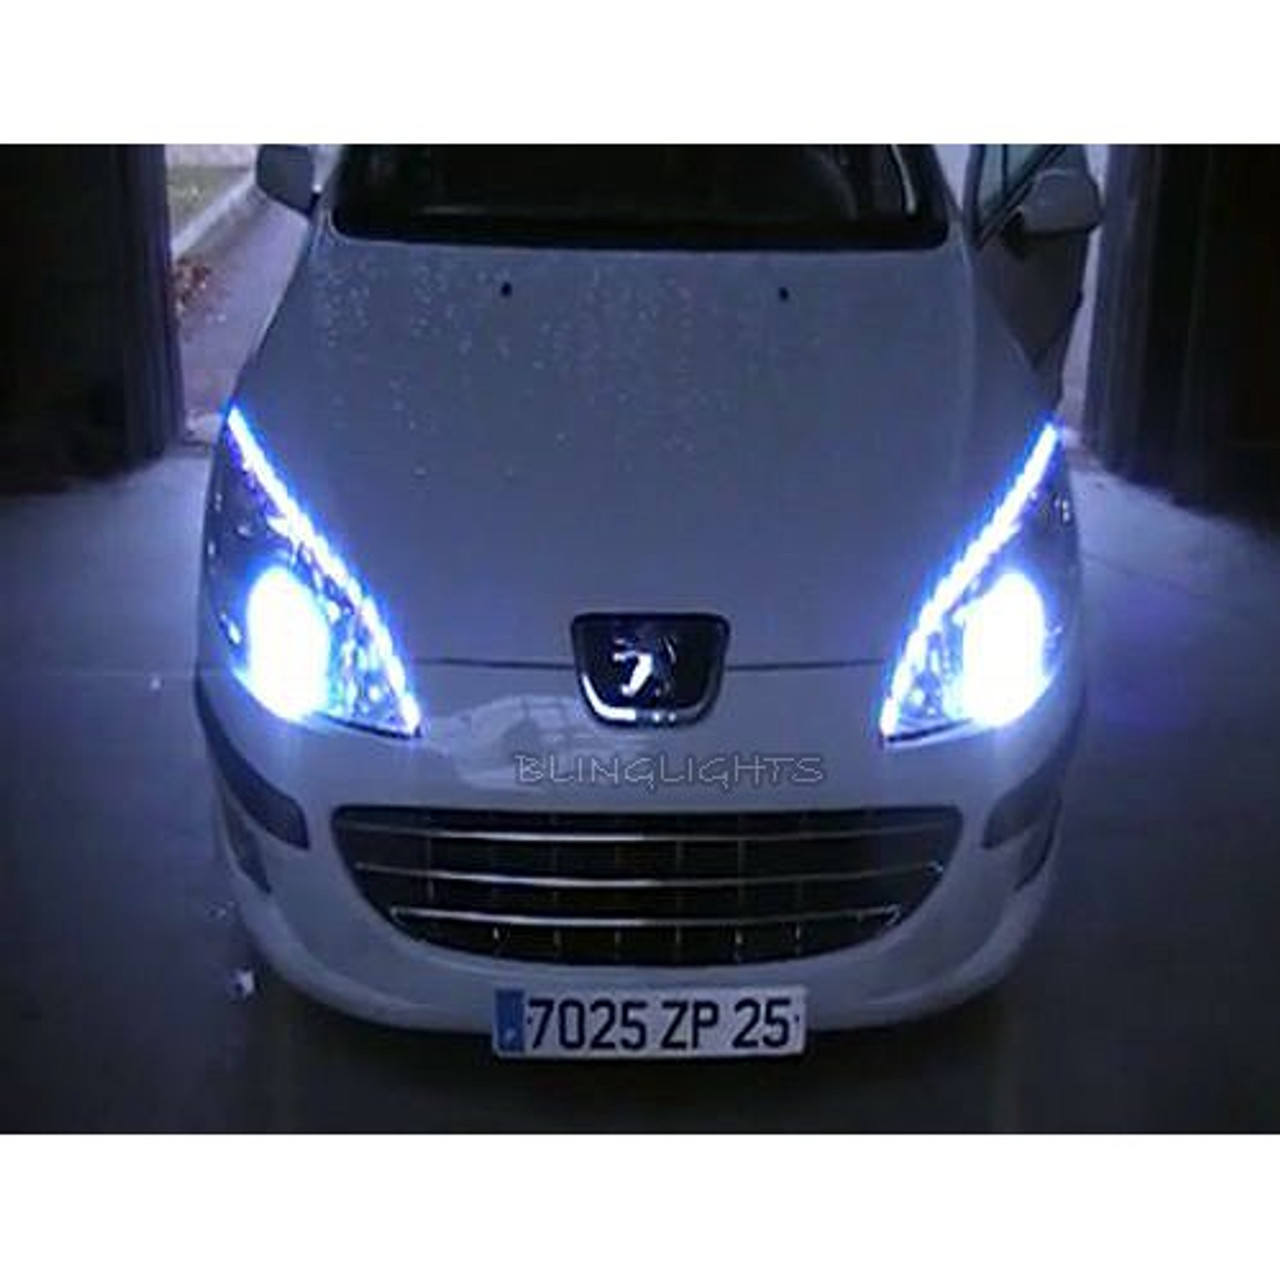 Peugeot 407 Led Strip Lights For Headlamps Headlights Head Lamps Drls Strips Saloon Coupe Estate Blinglights Com